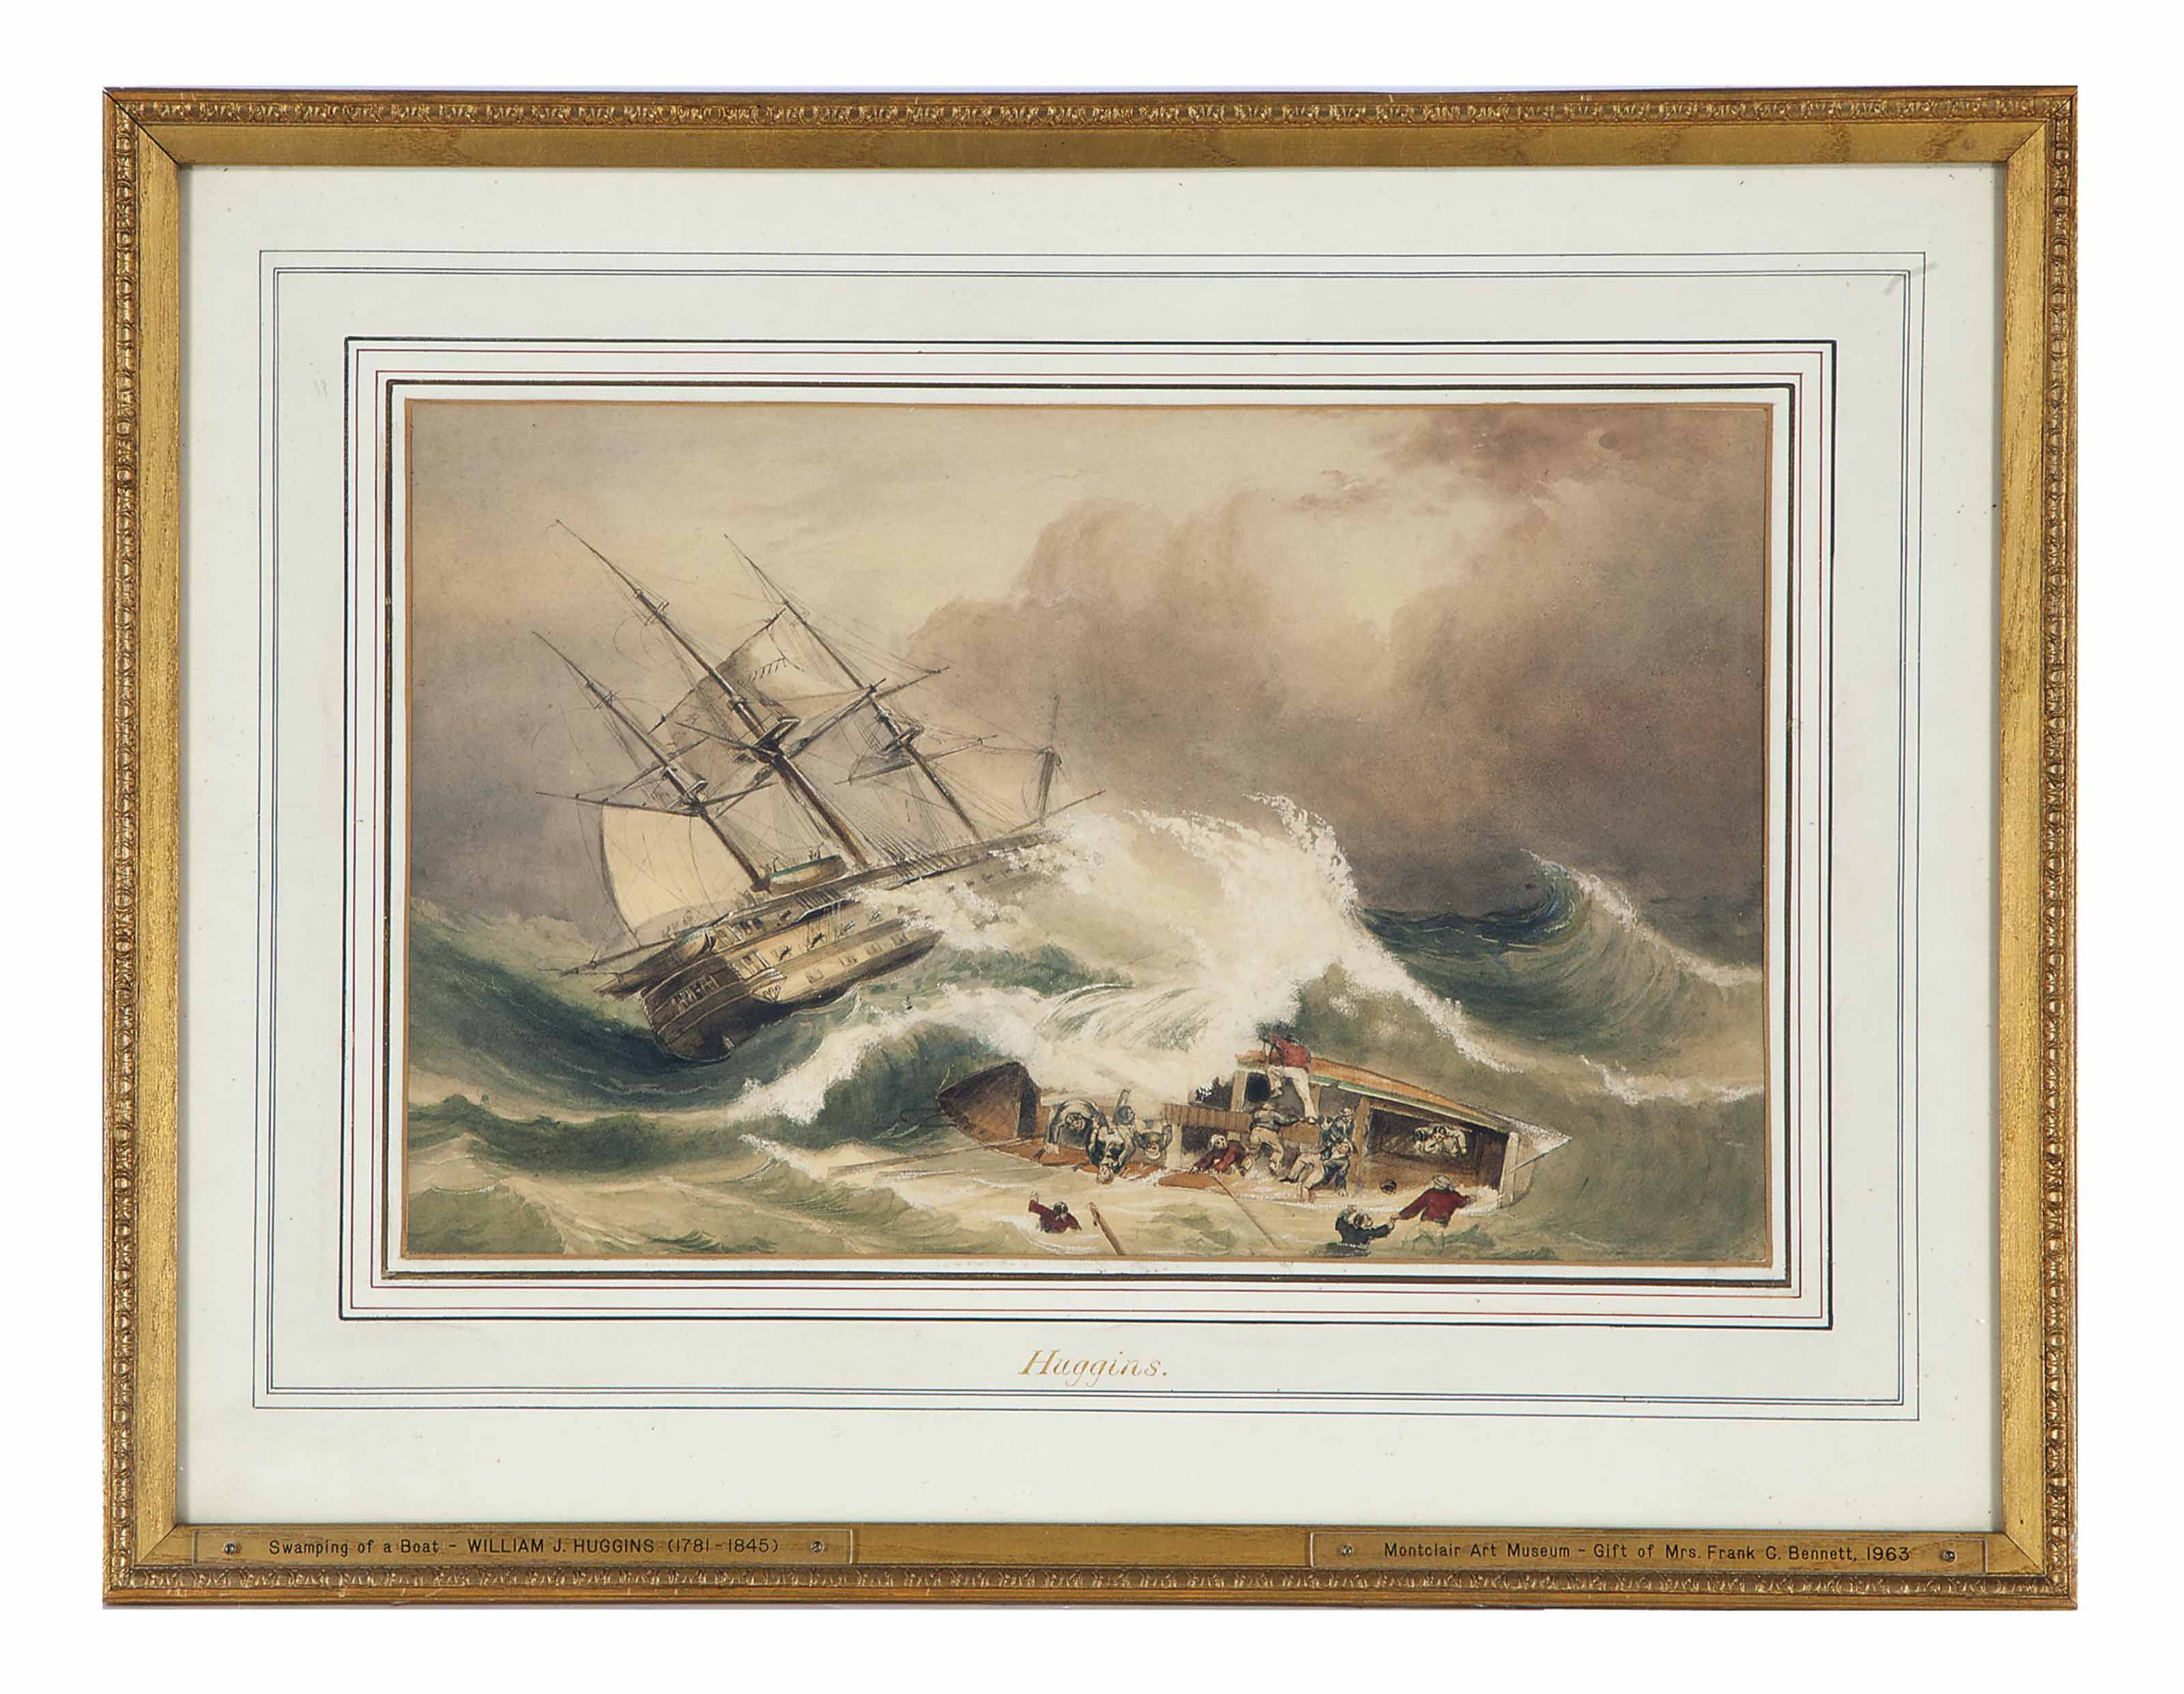 Ship wreck in a stormy sea